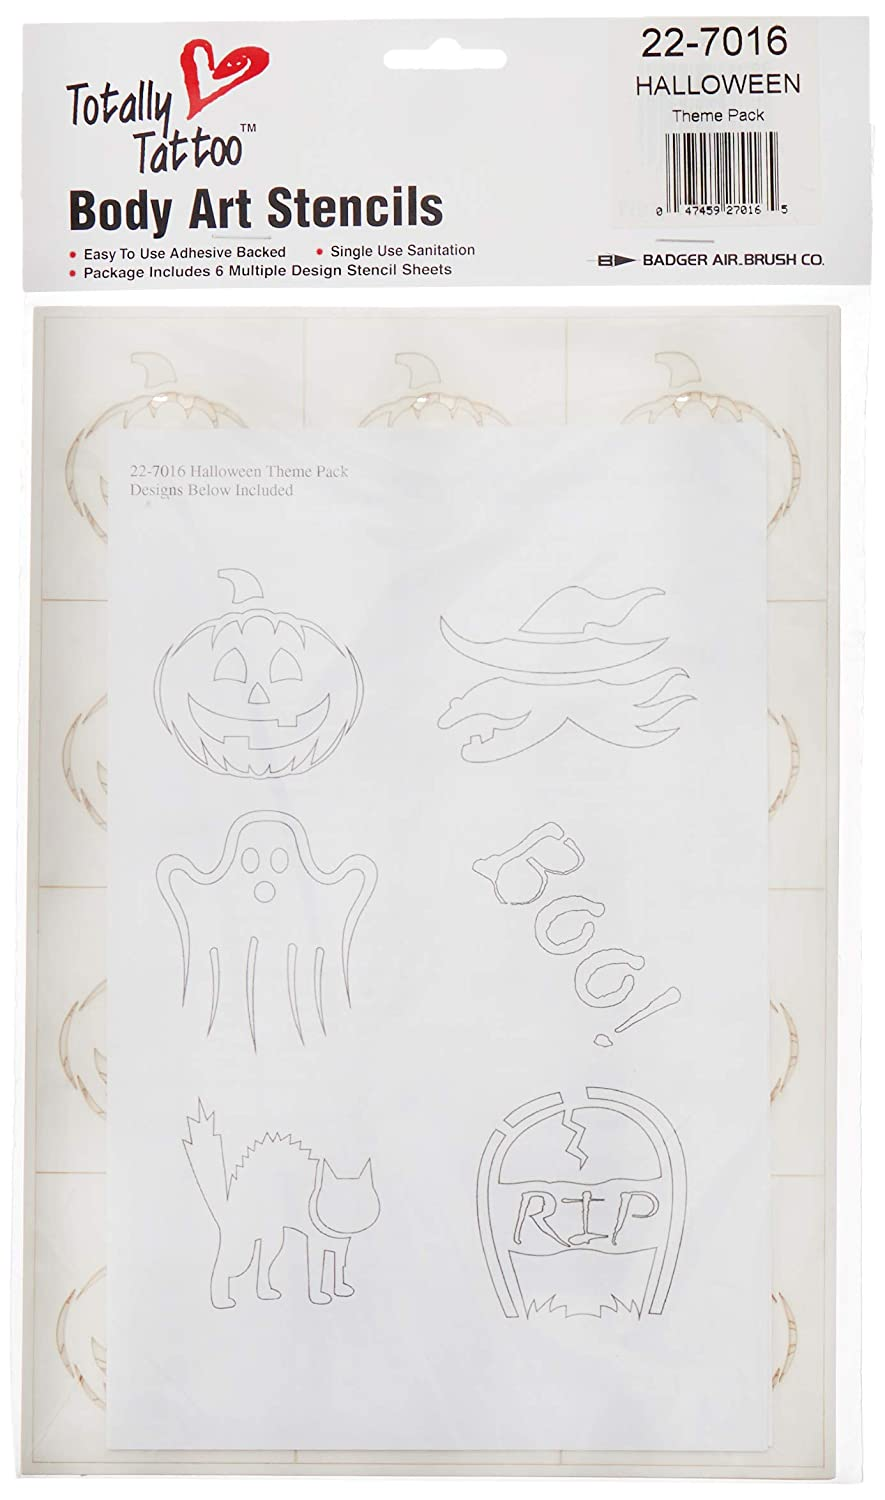 Badger 22 7016 Totally Tattoo Body Art Stencils Halloween Theme Pack Amazon In Home Kitchen